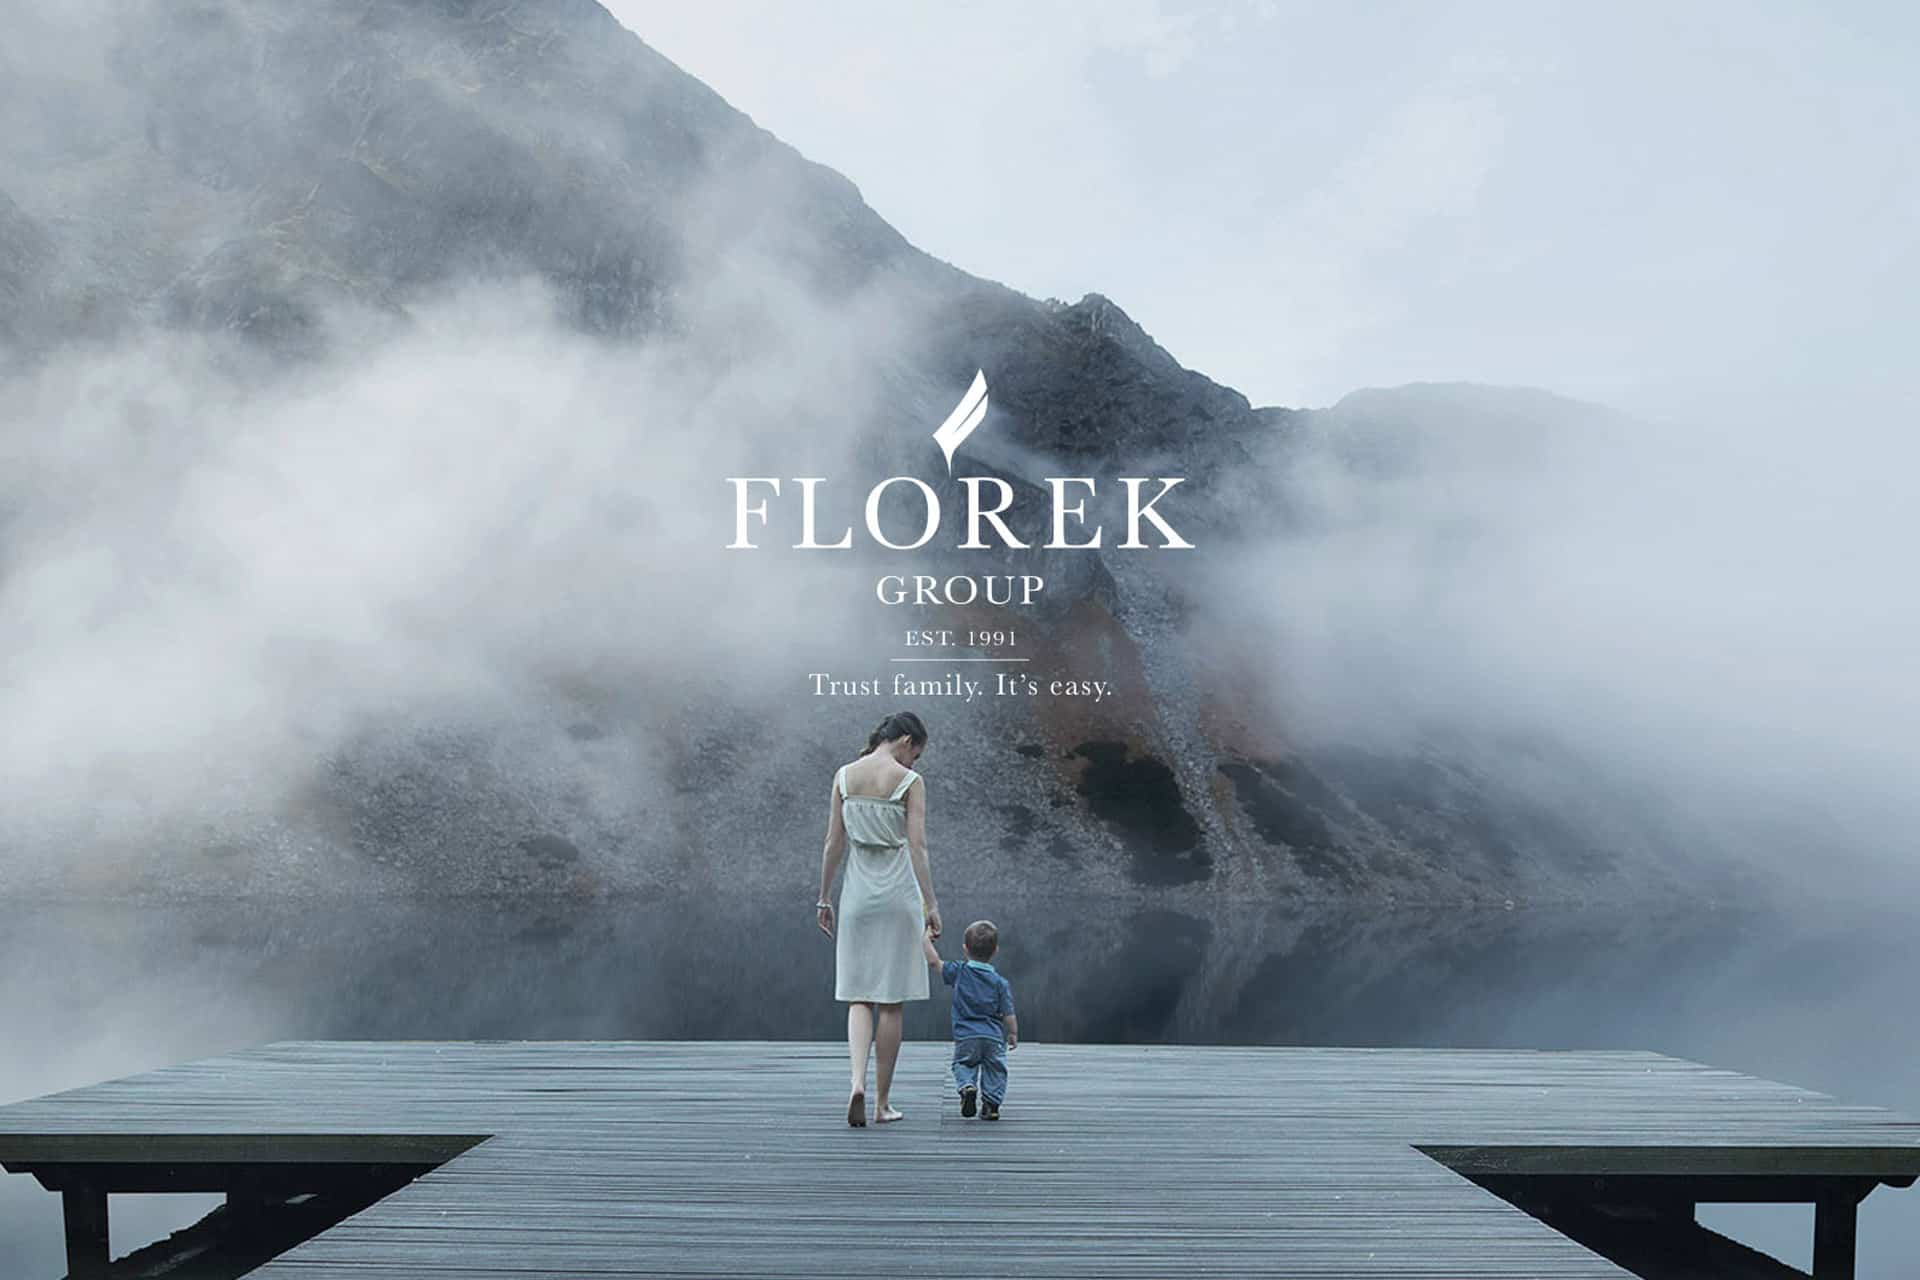 Florek Group